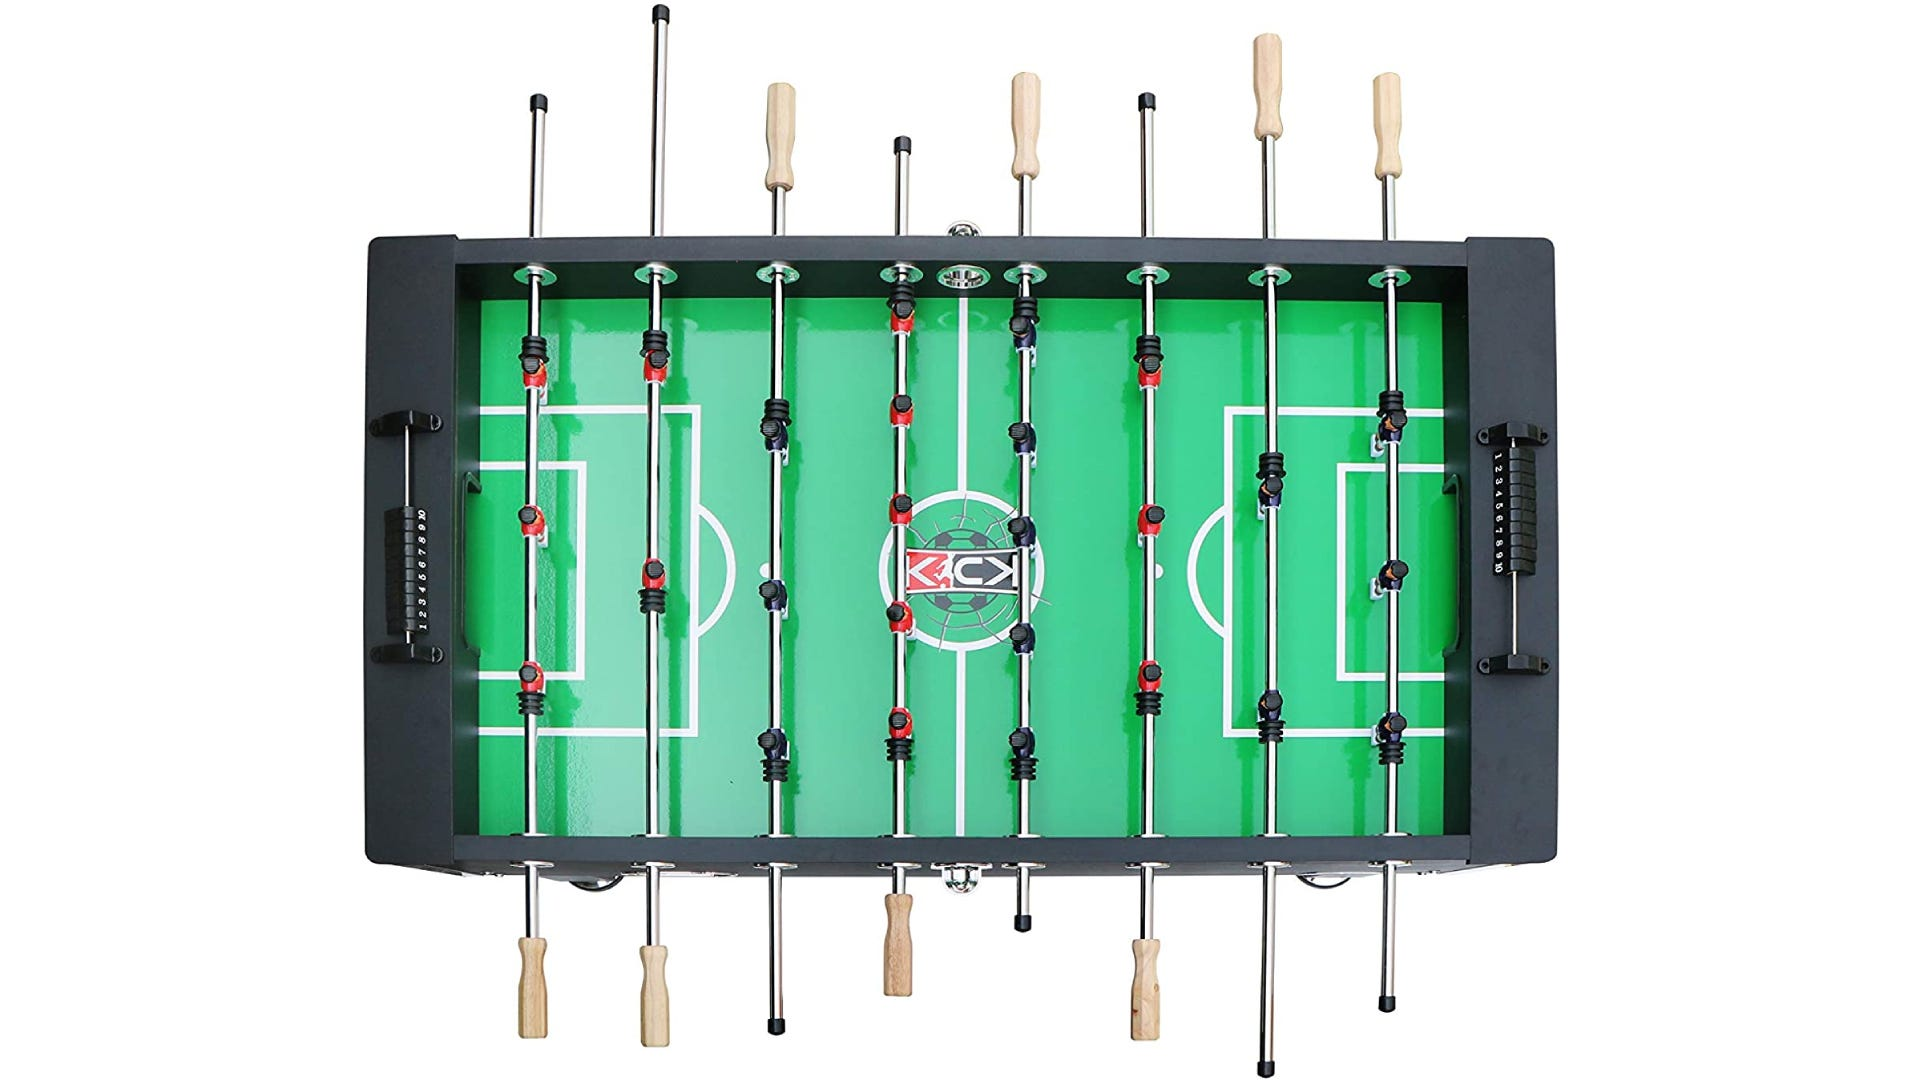 top view of foosball table with red and black teams